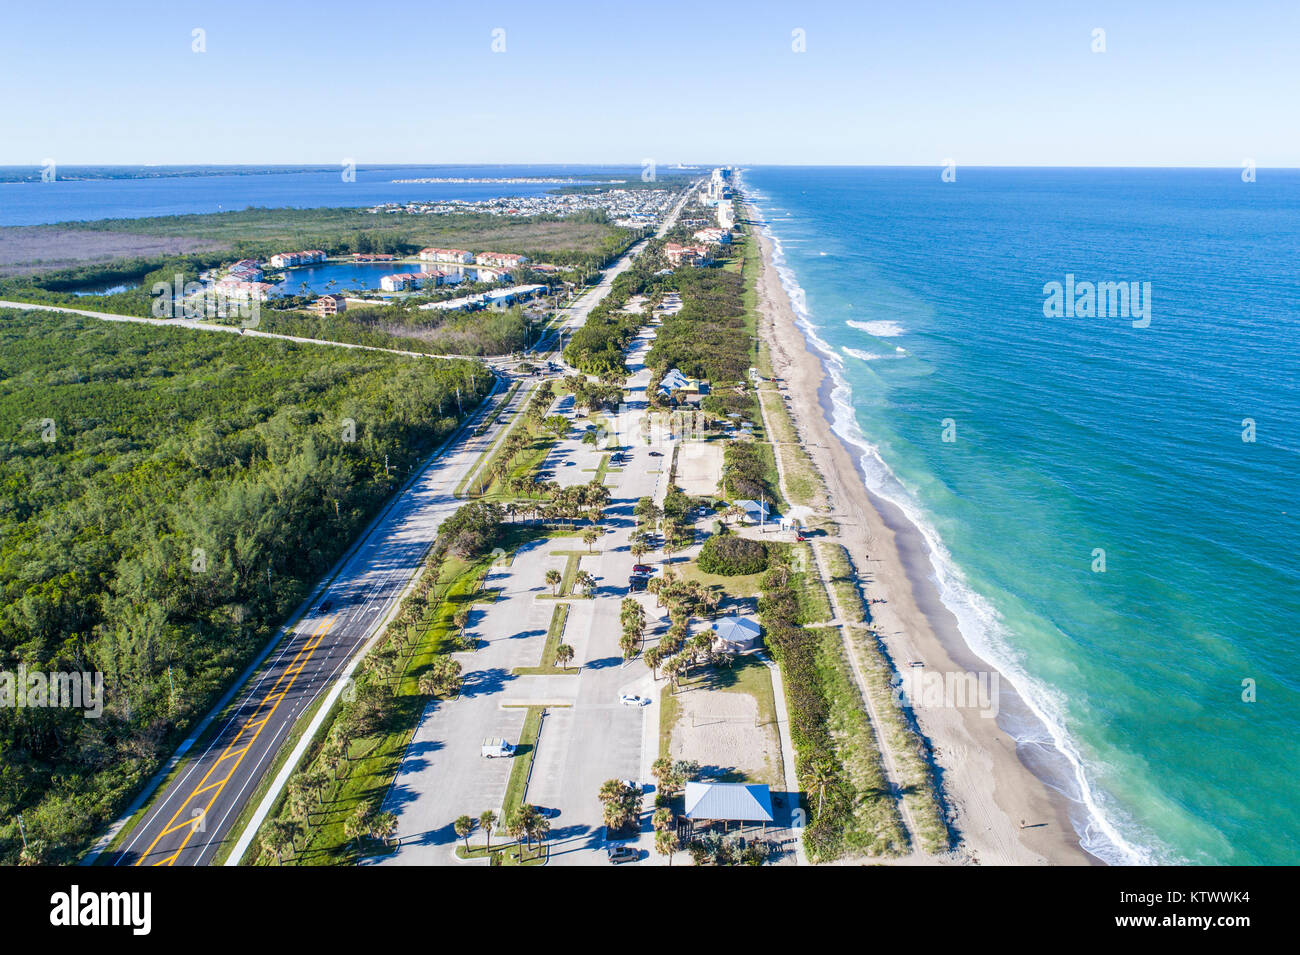 Hutchinson Island Florida Stock Photos & Hutchinson Island Florida ...